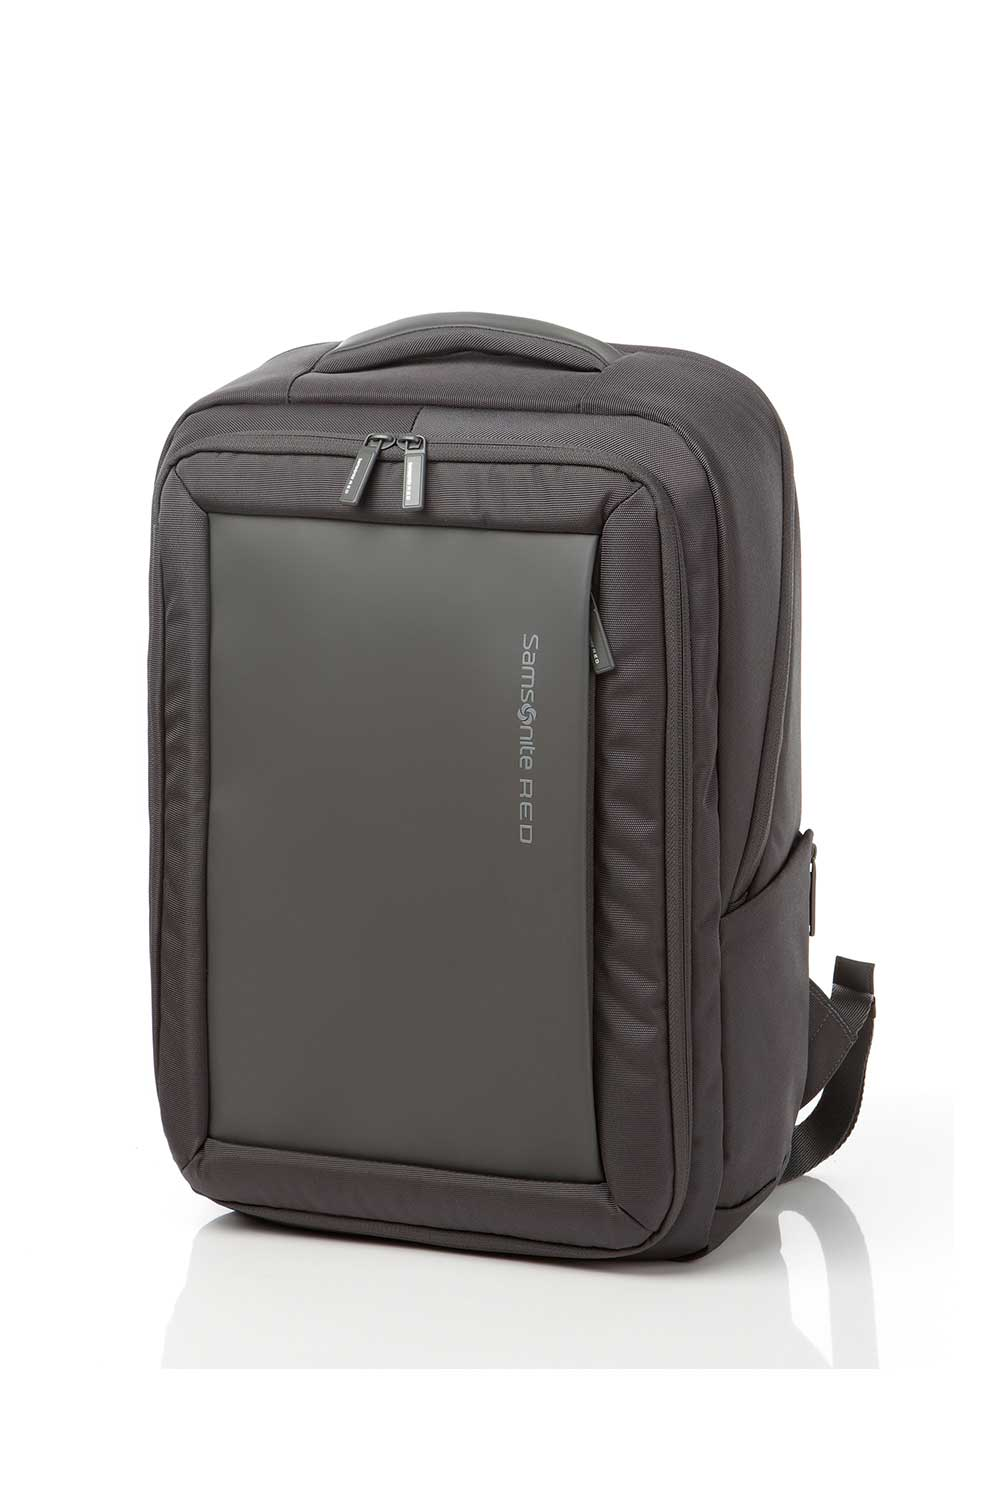 Samsonite RED Bagford 後背包M